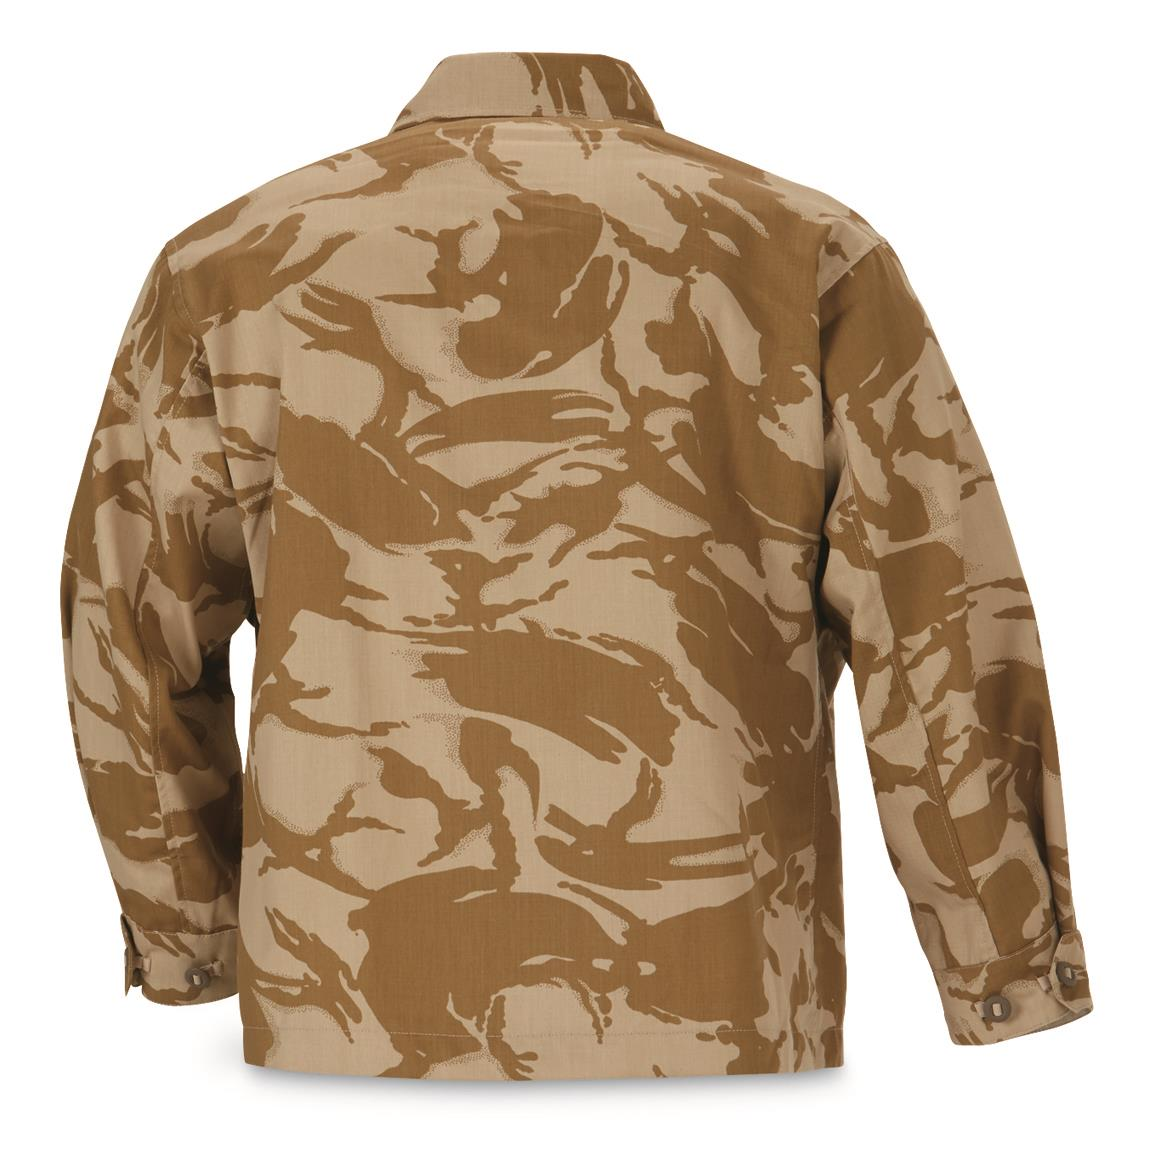 Genuine British BDU shirt